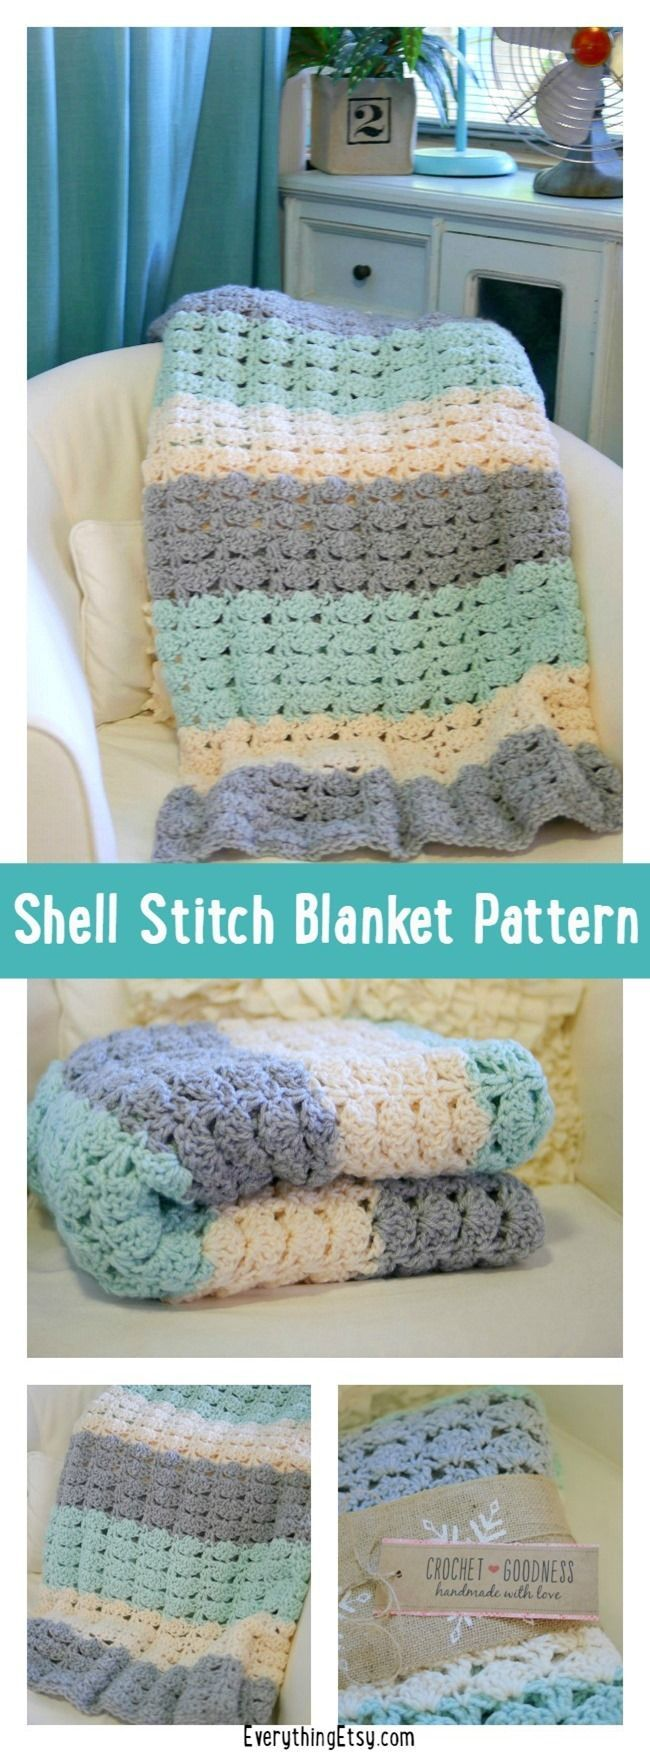 Best 25 easy crochet blanket patterns ideas on pinterest easy easy crochet shell stitch blanket pattern everything etsy bankloansurffo Images